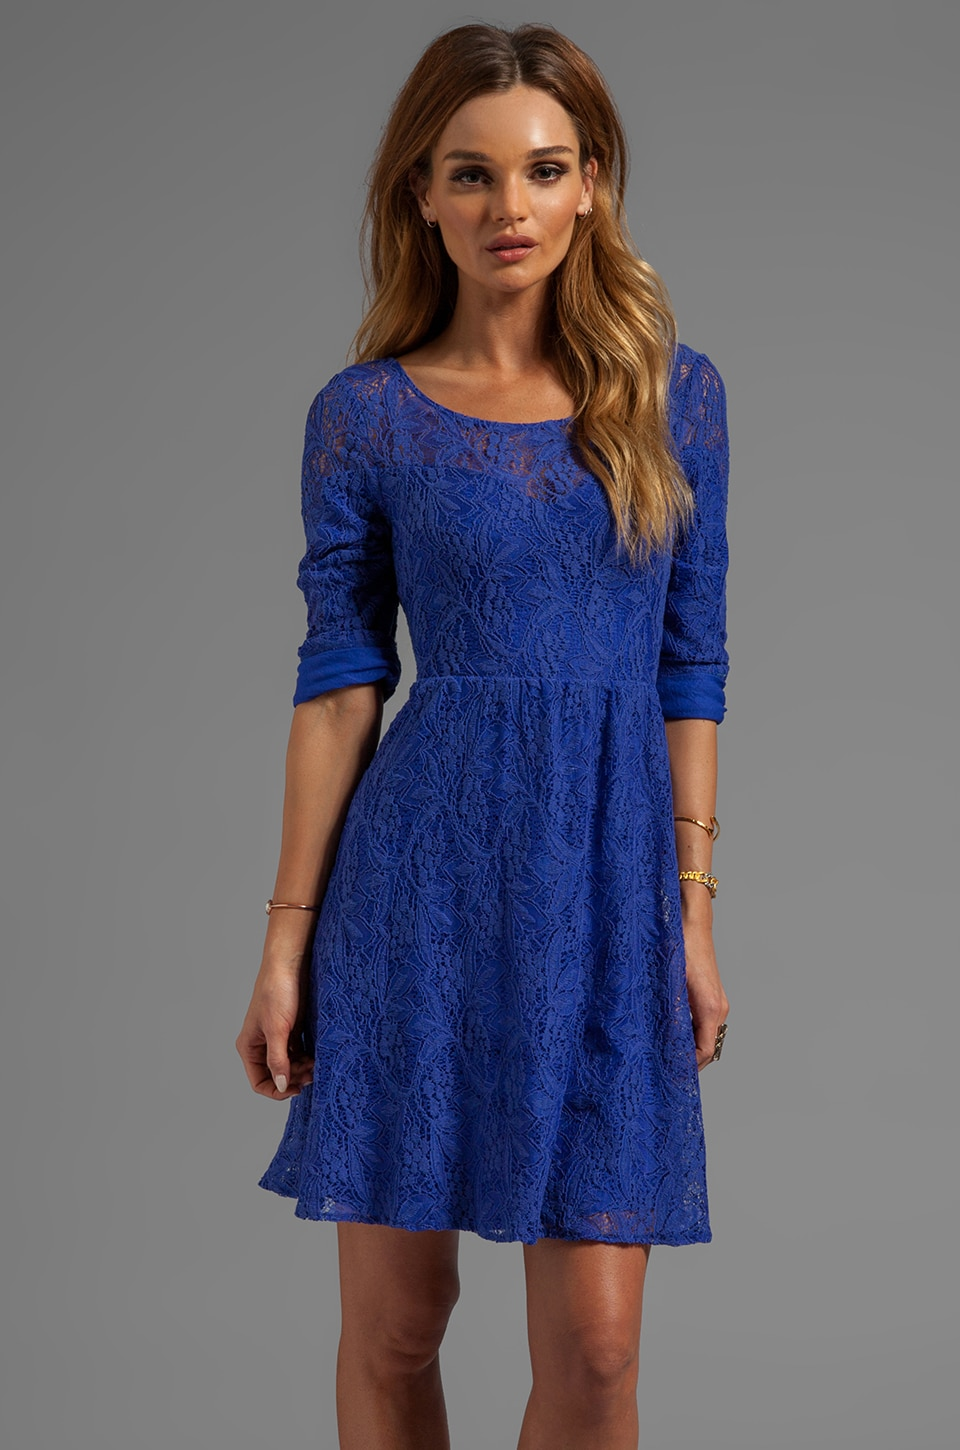 Free People Shake It Up Dress in Mosaic Blue